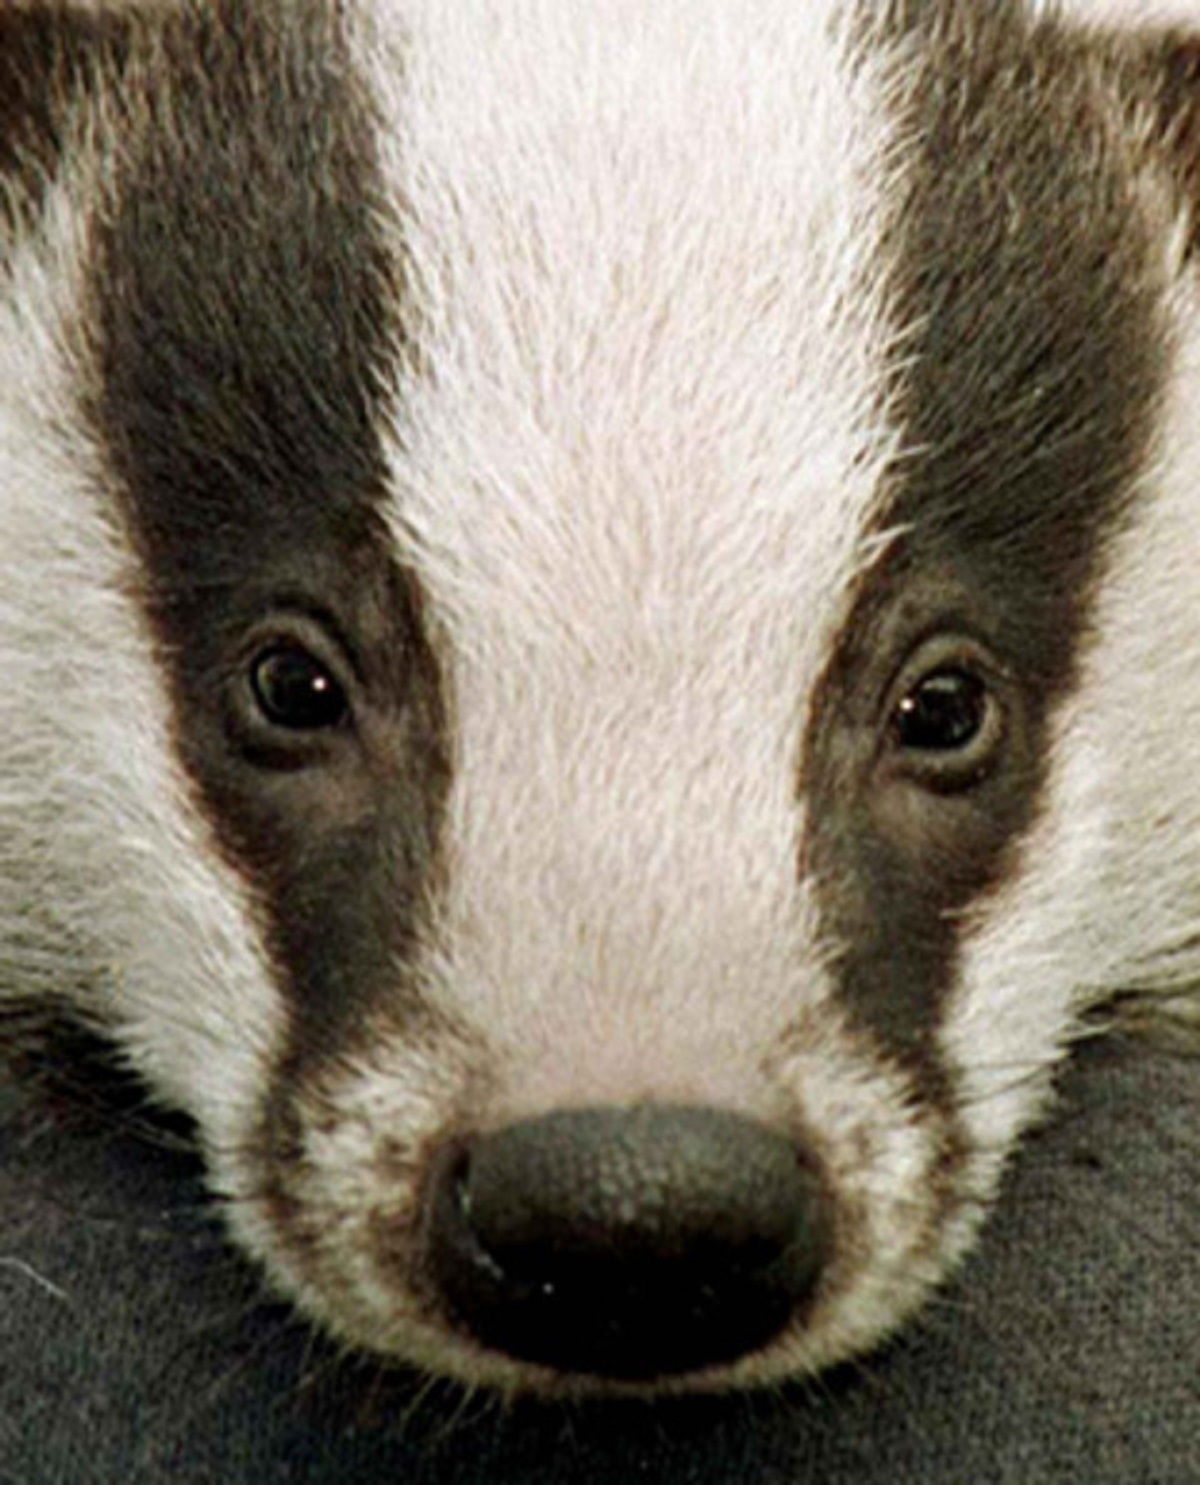 Anti-cull group calls for review